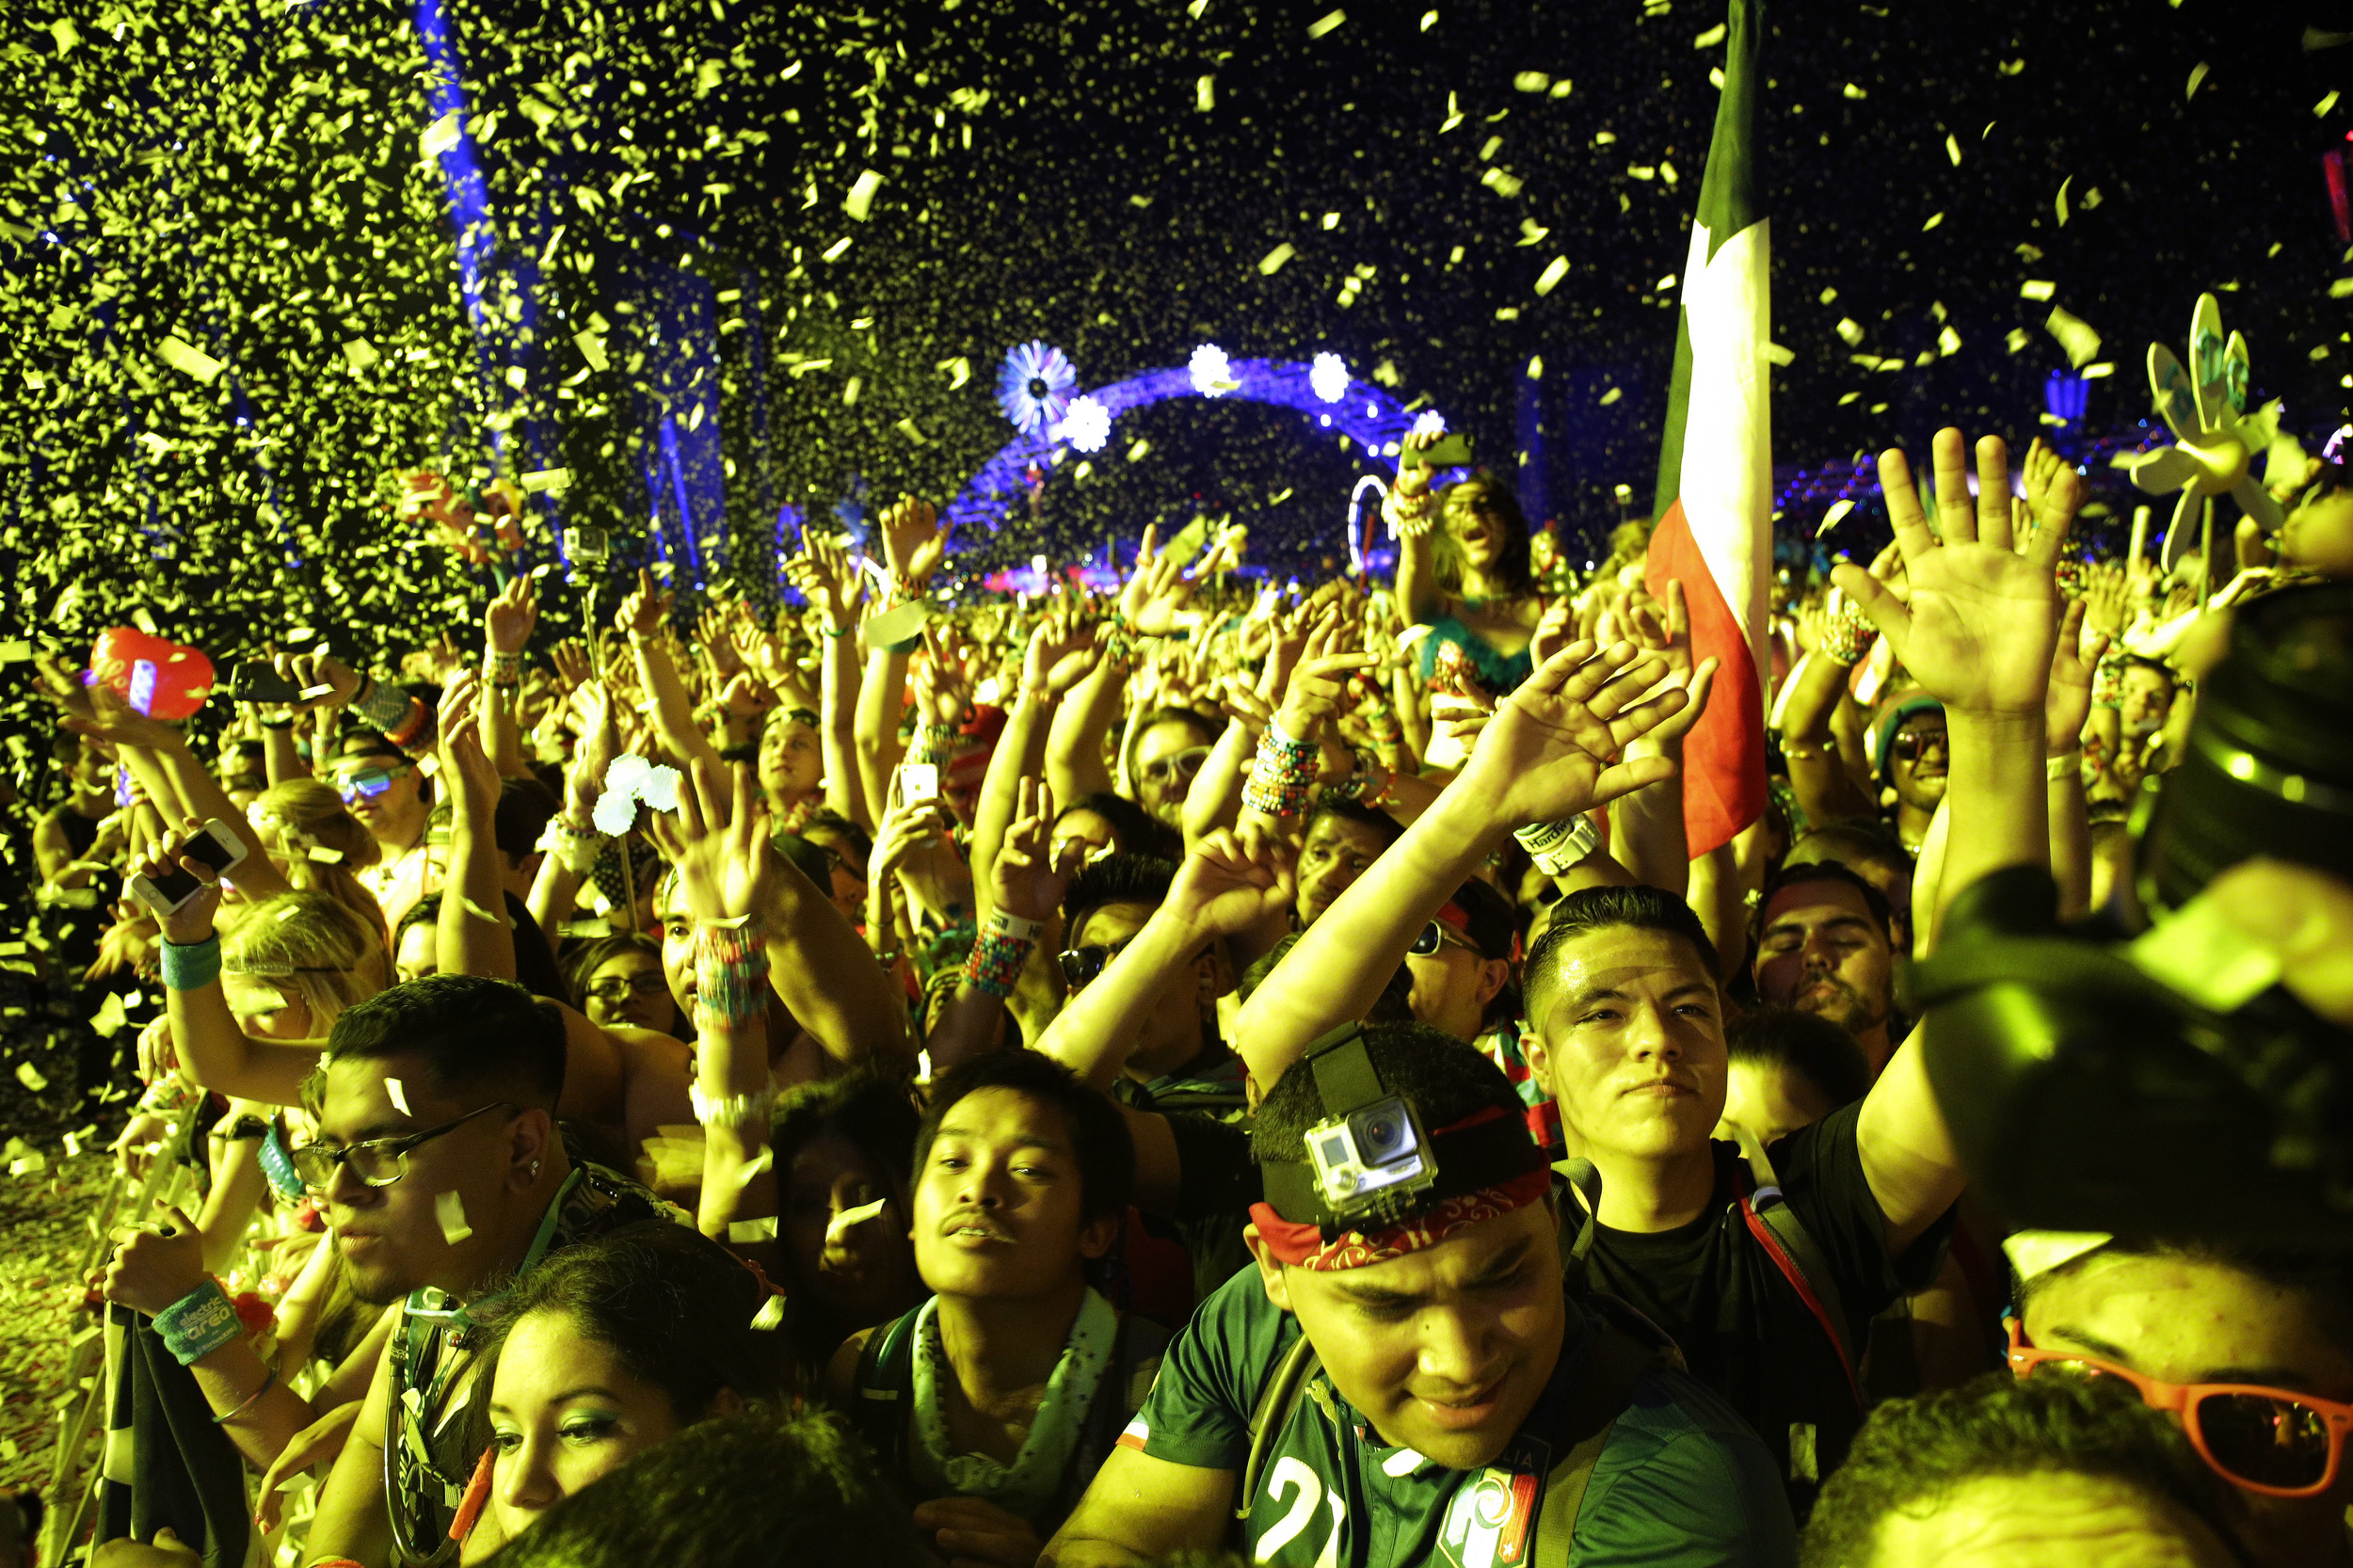 Dance Dance Dissolution: The Electric Daisy Carnival's Fresh Hell